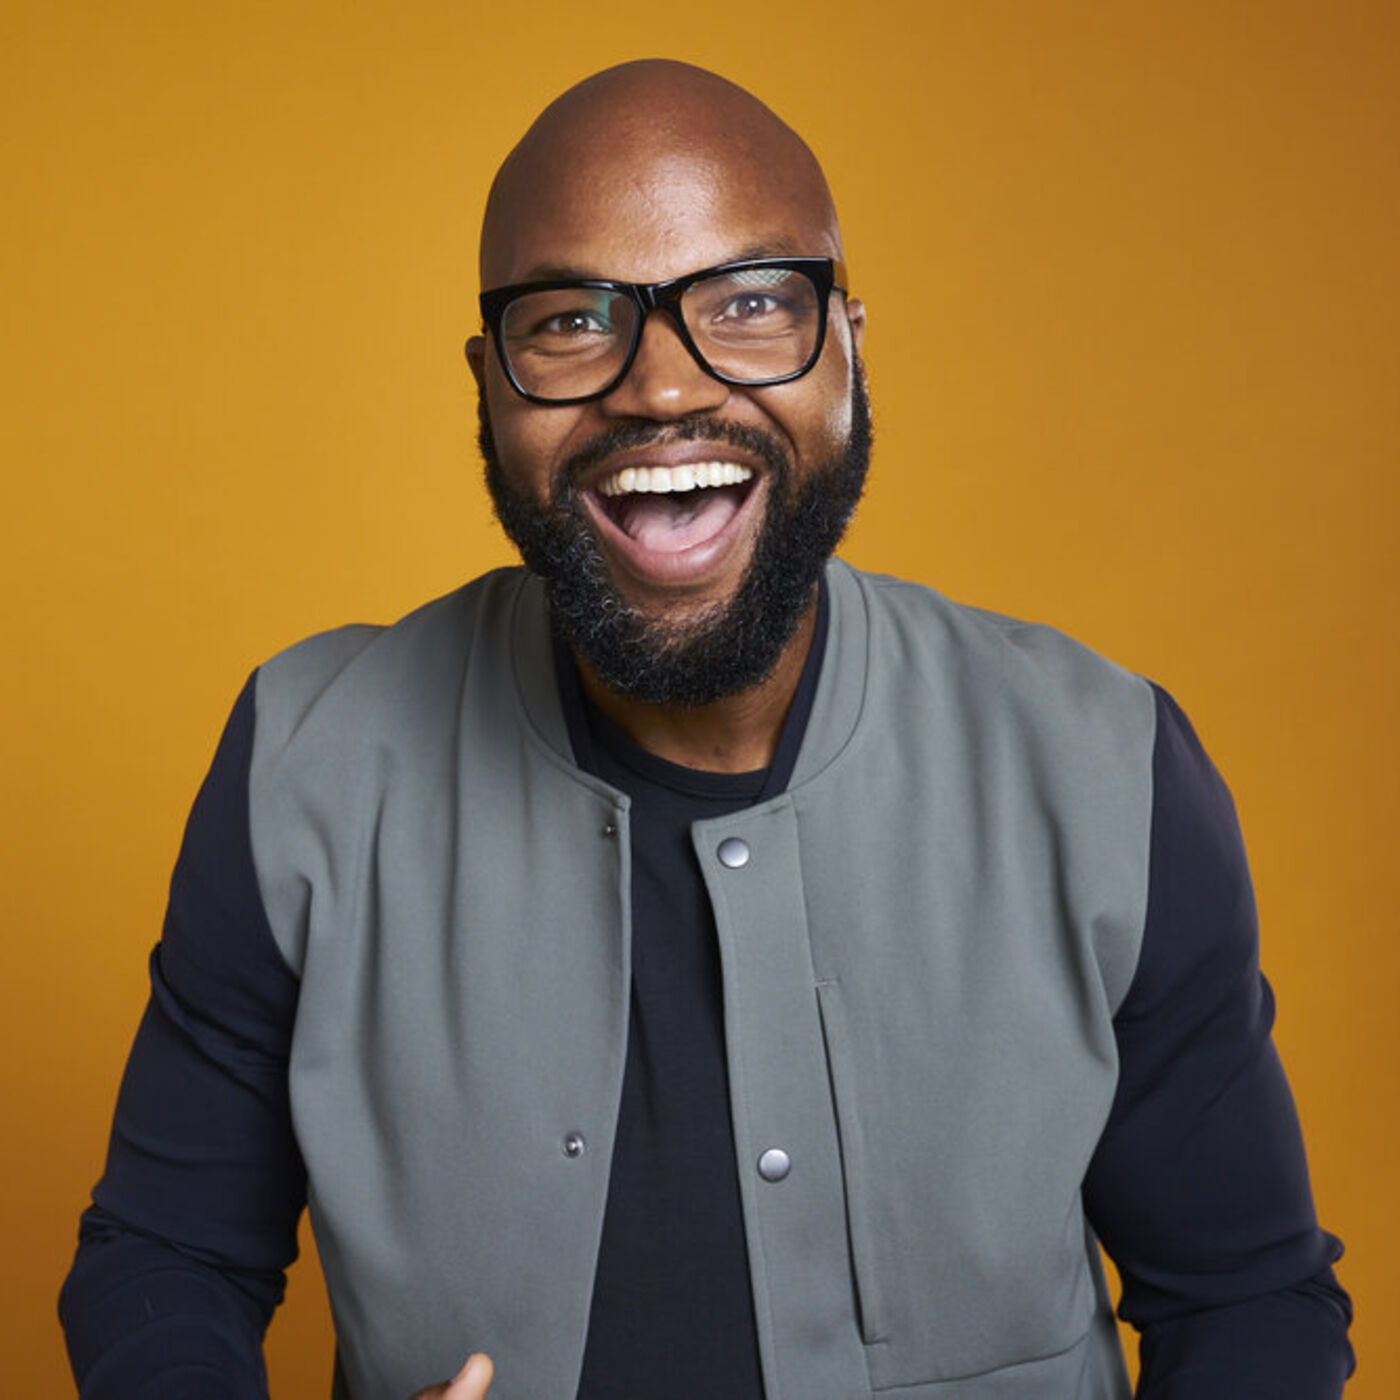 Episode 58 with Leo Flowers - Comedian, Podcaster, Life Coach